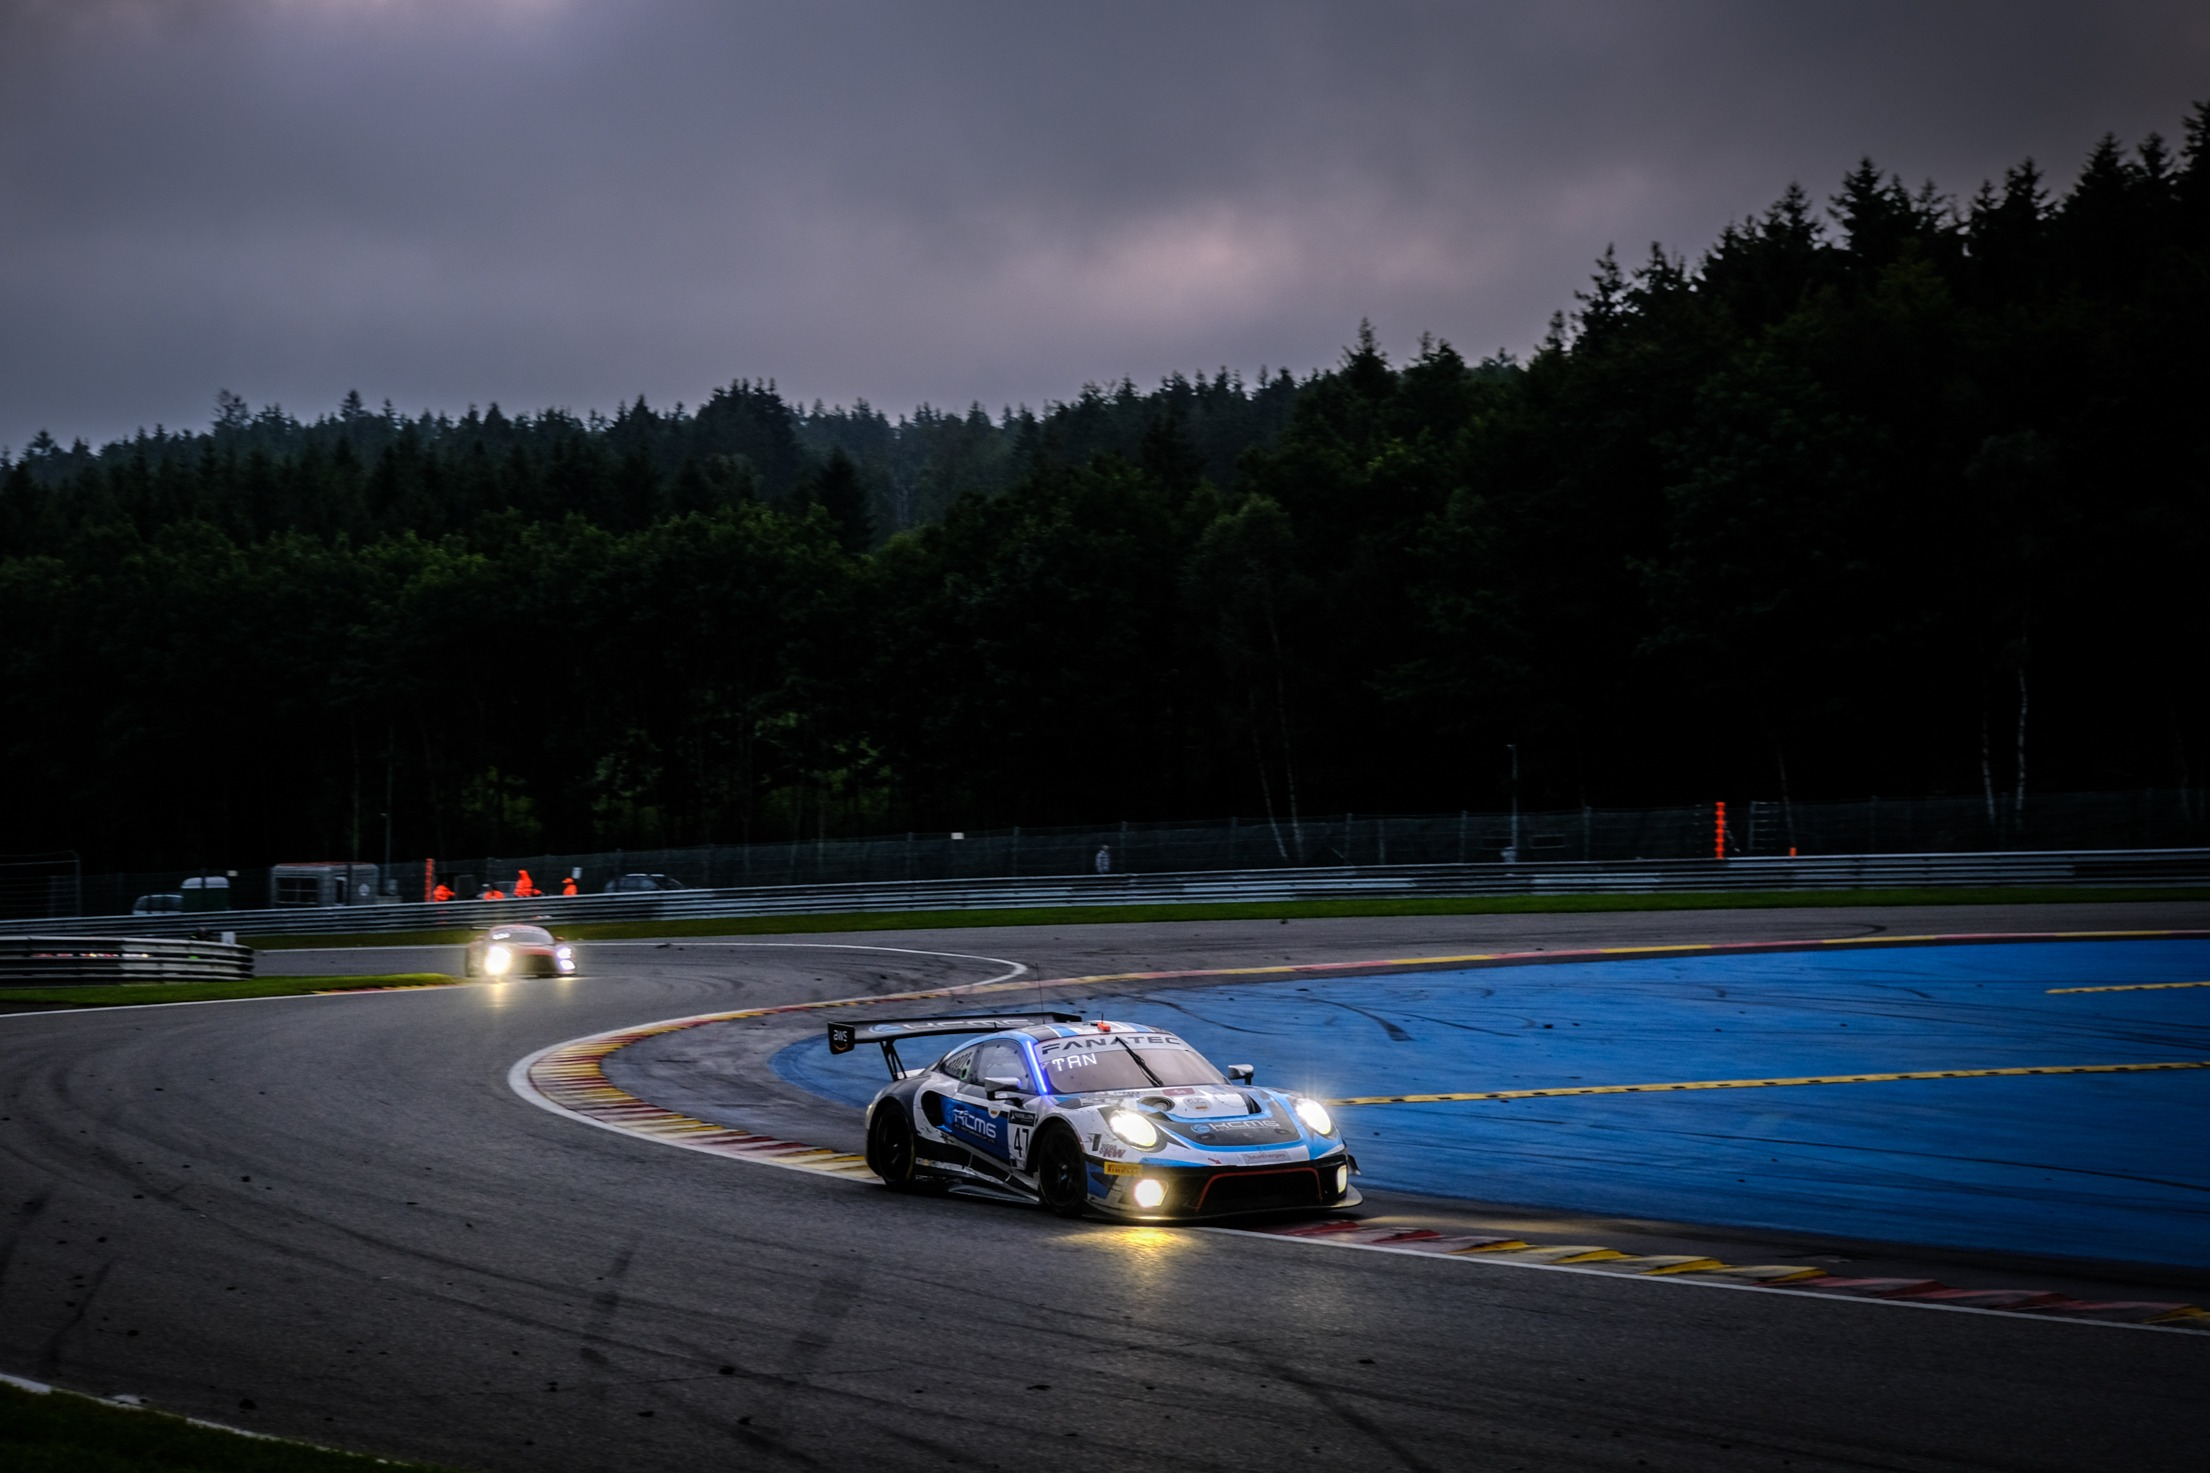 KCMG Porsche will run to the end with Martin and Tandy alternating